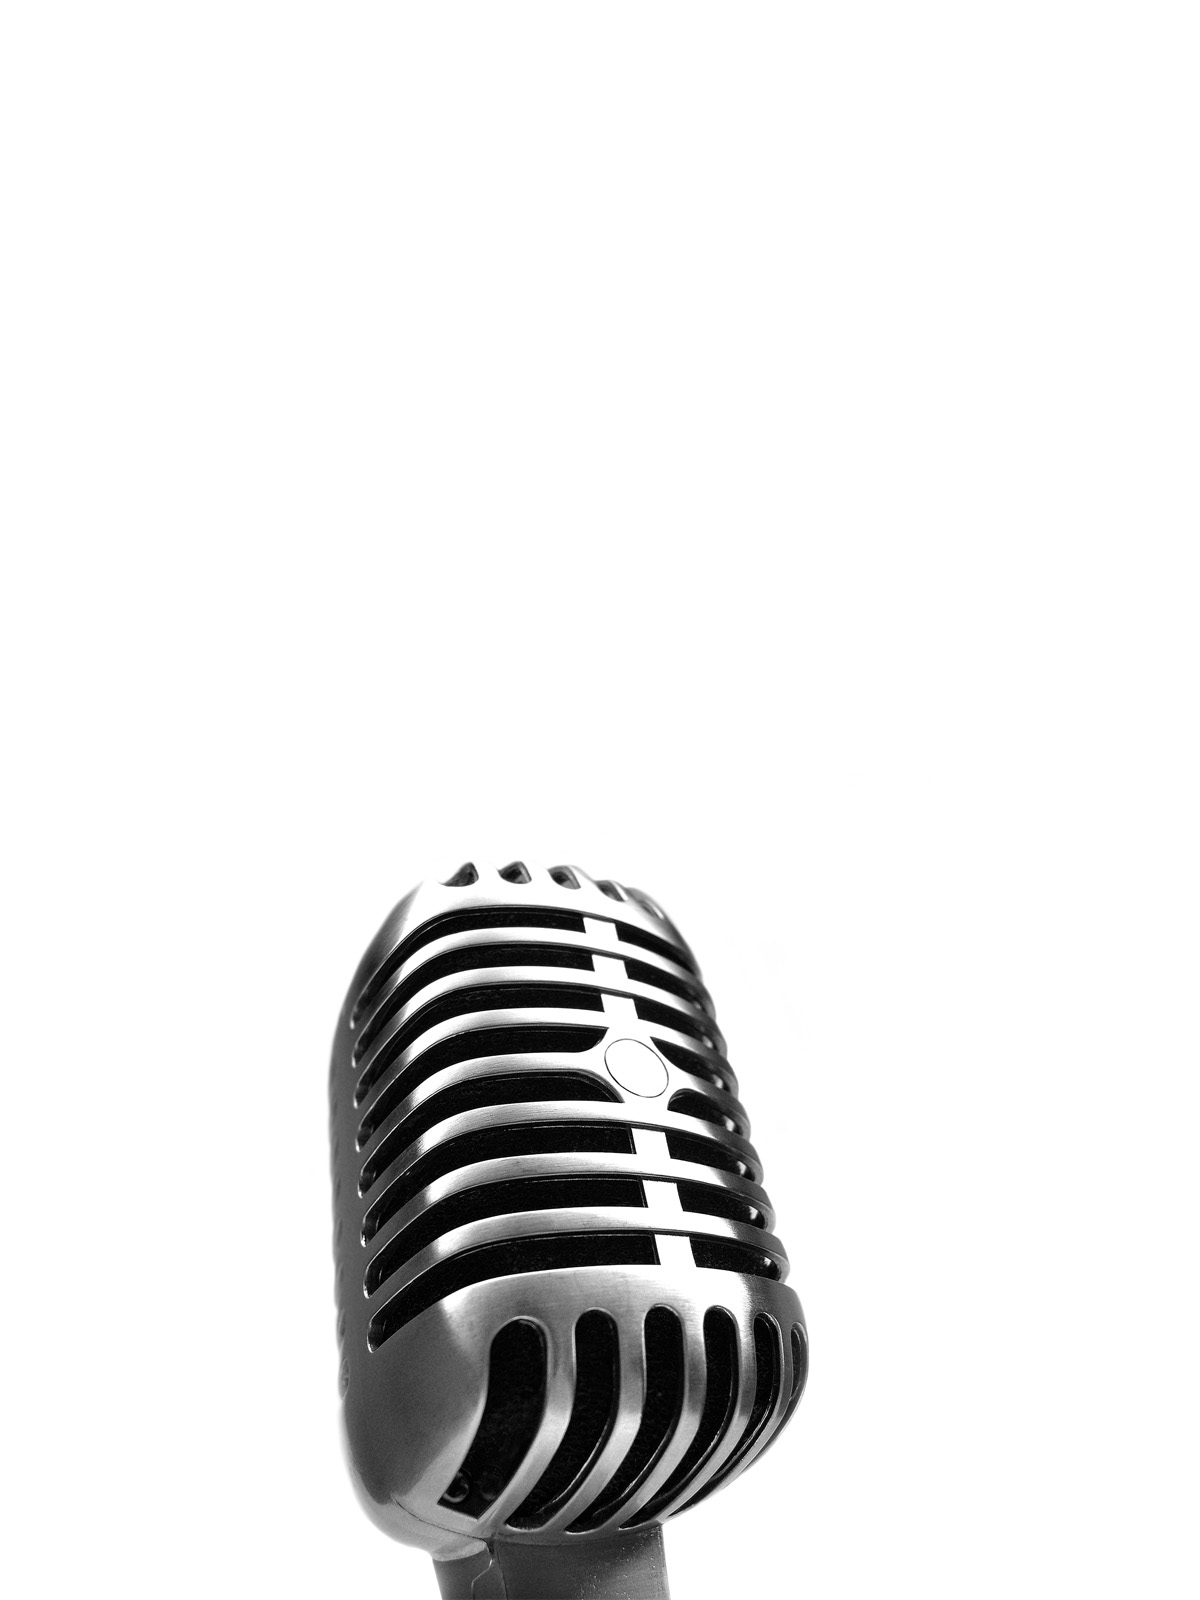 Microphone Microphone 50133